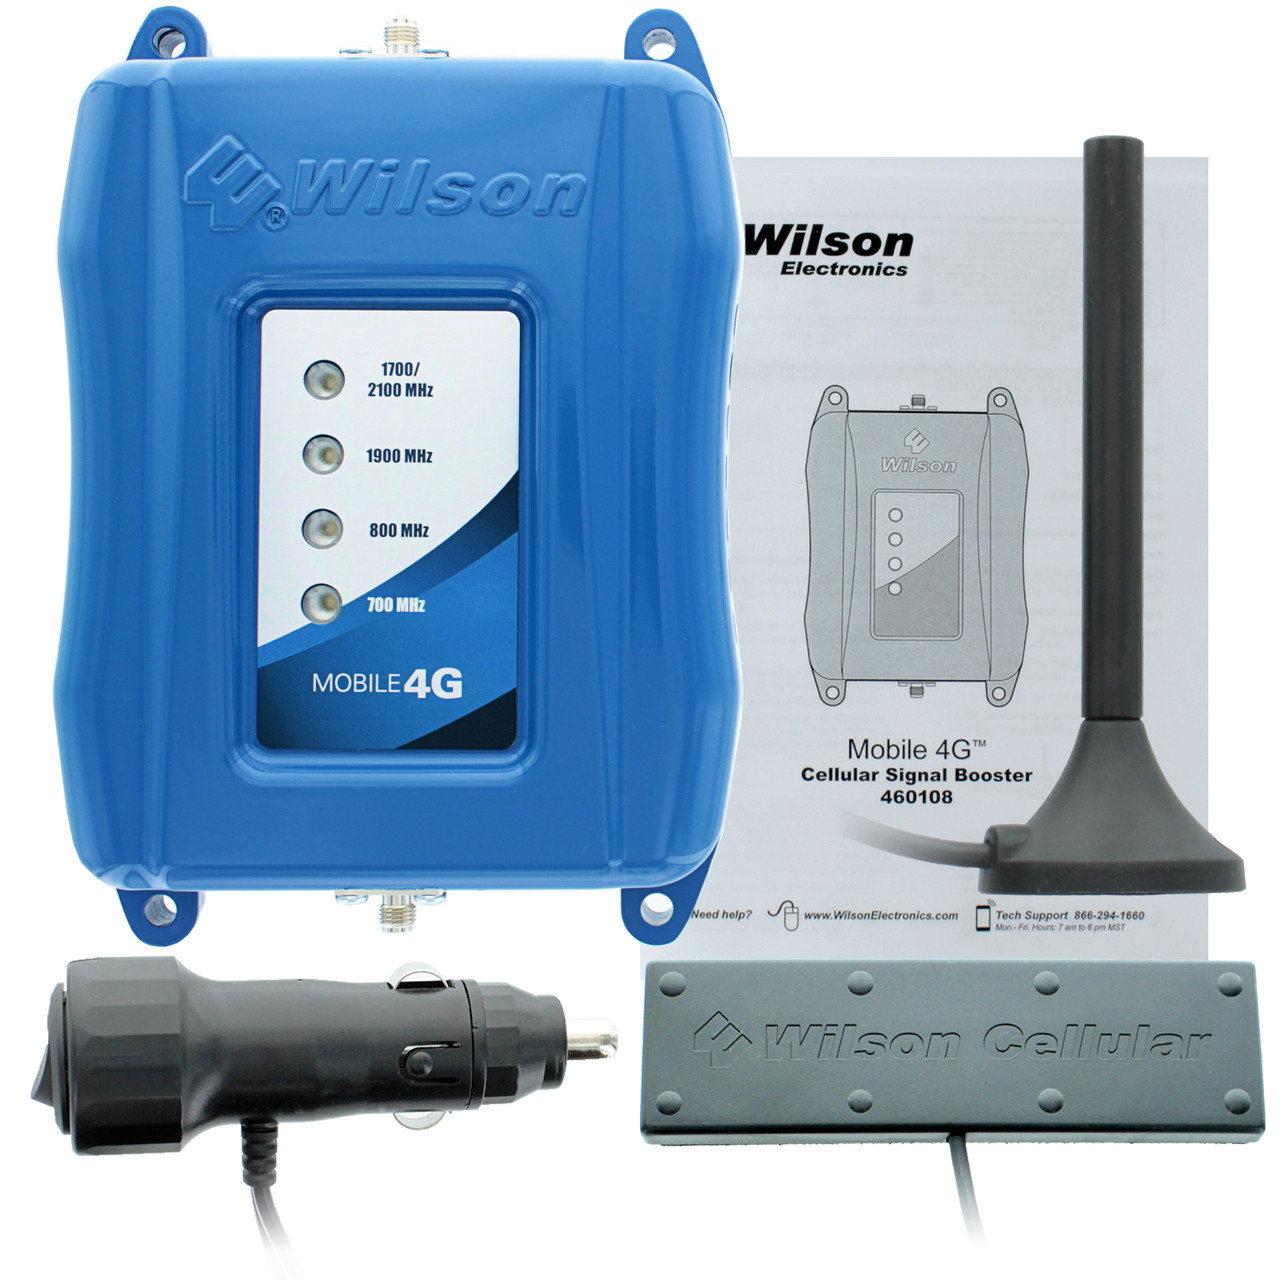 Wilson Mobile 4G +50 dB Amplifier Kit - 460108F - Complete Kit